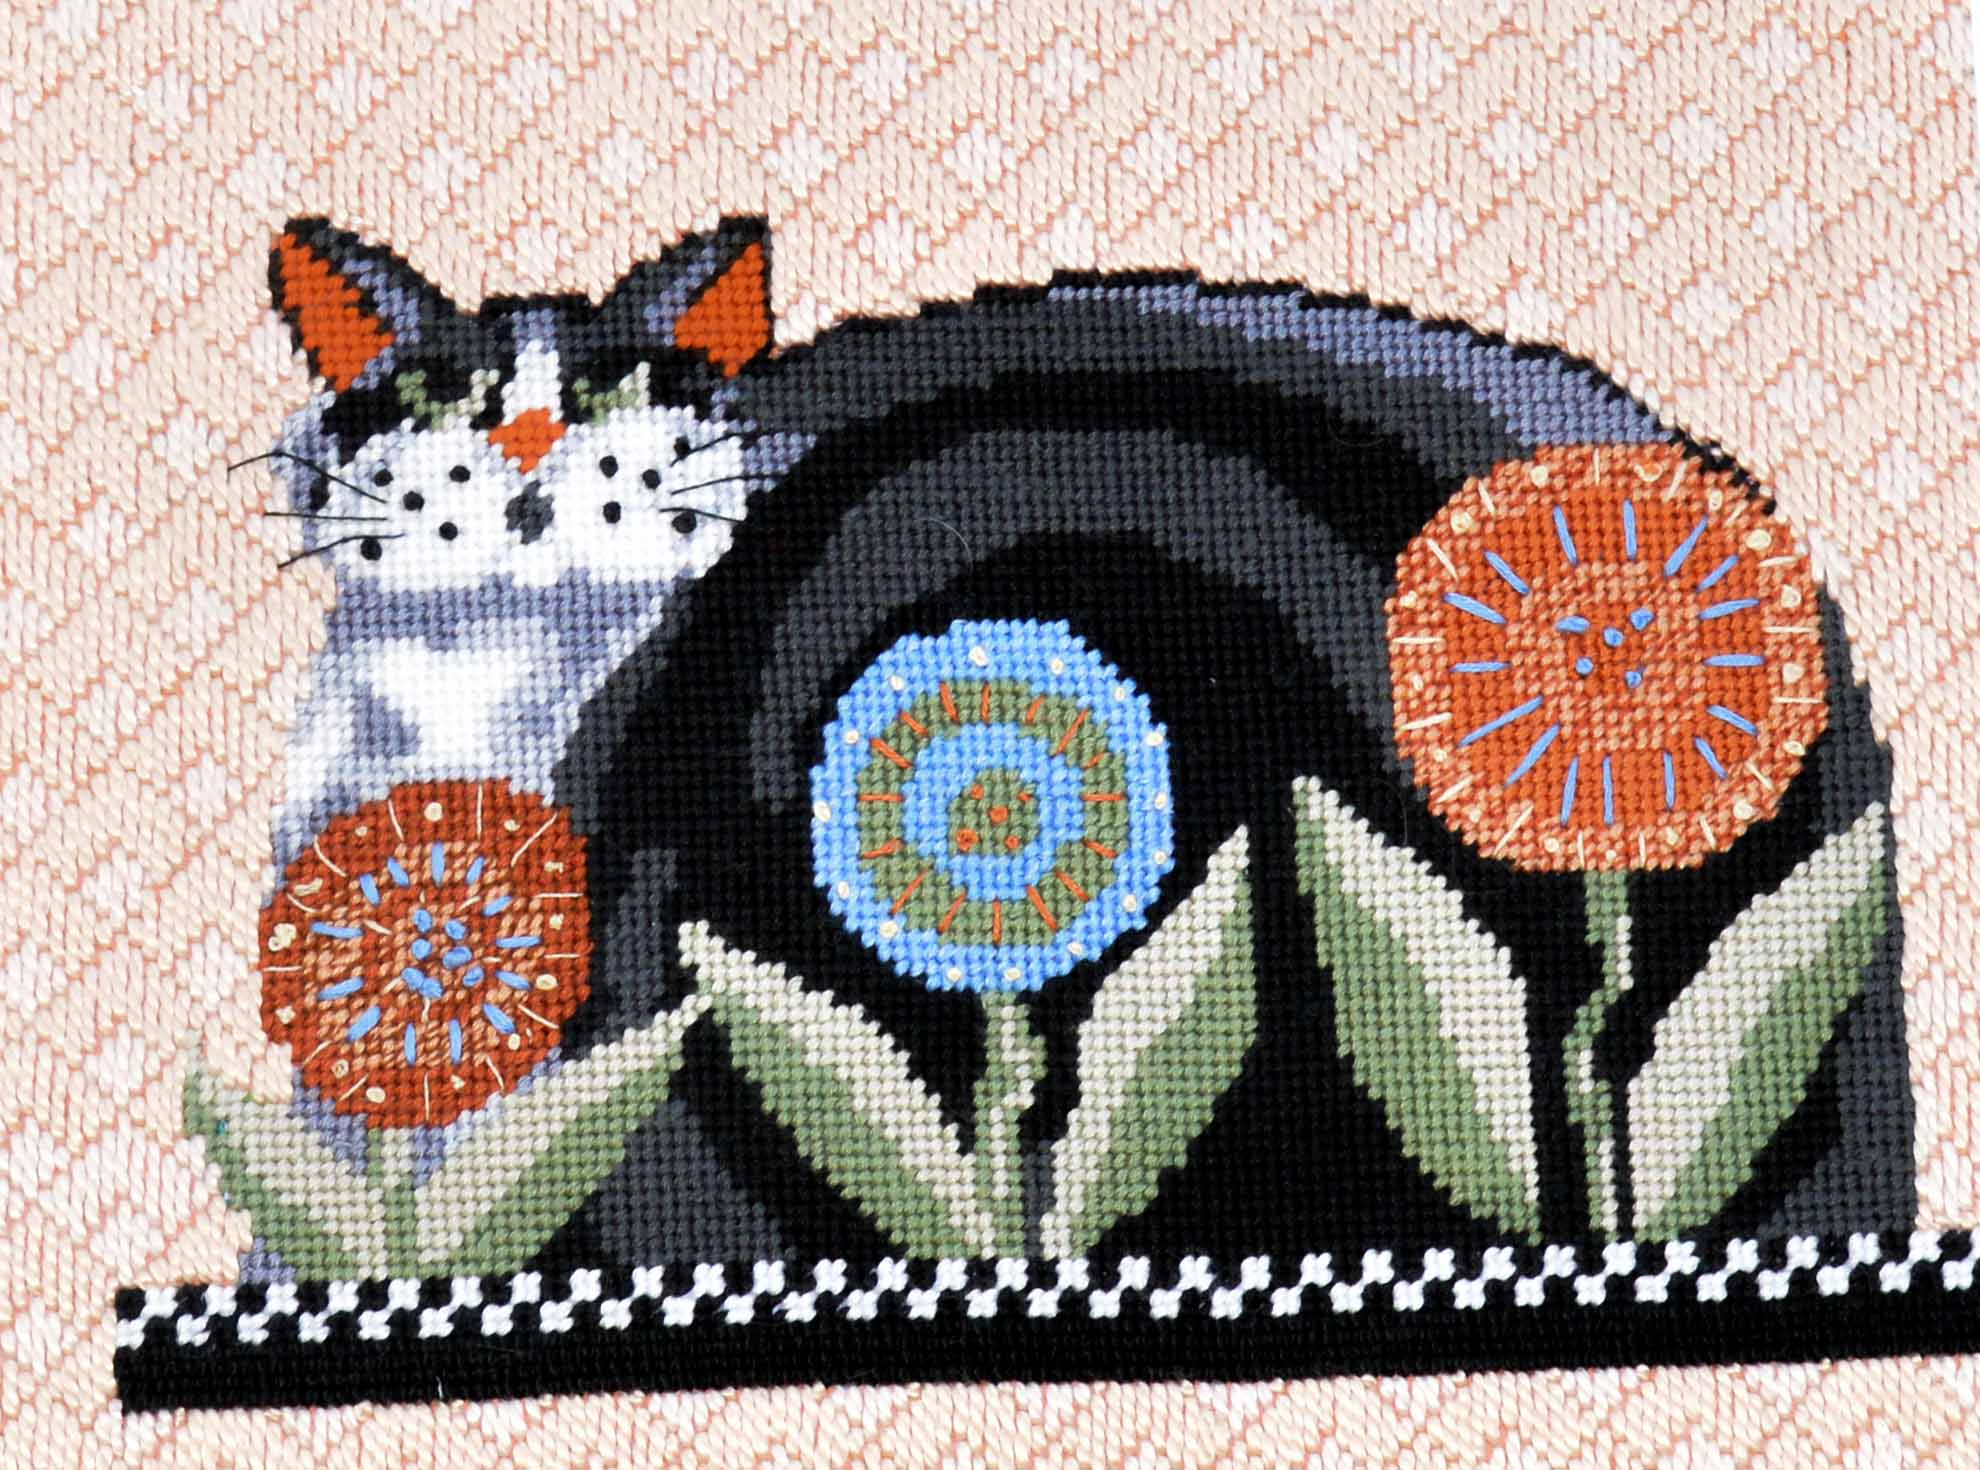 Needlepoint-Cat.jpg